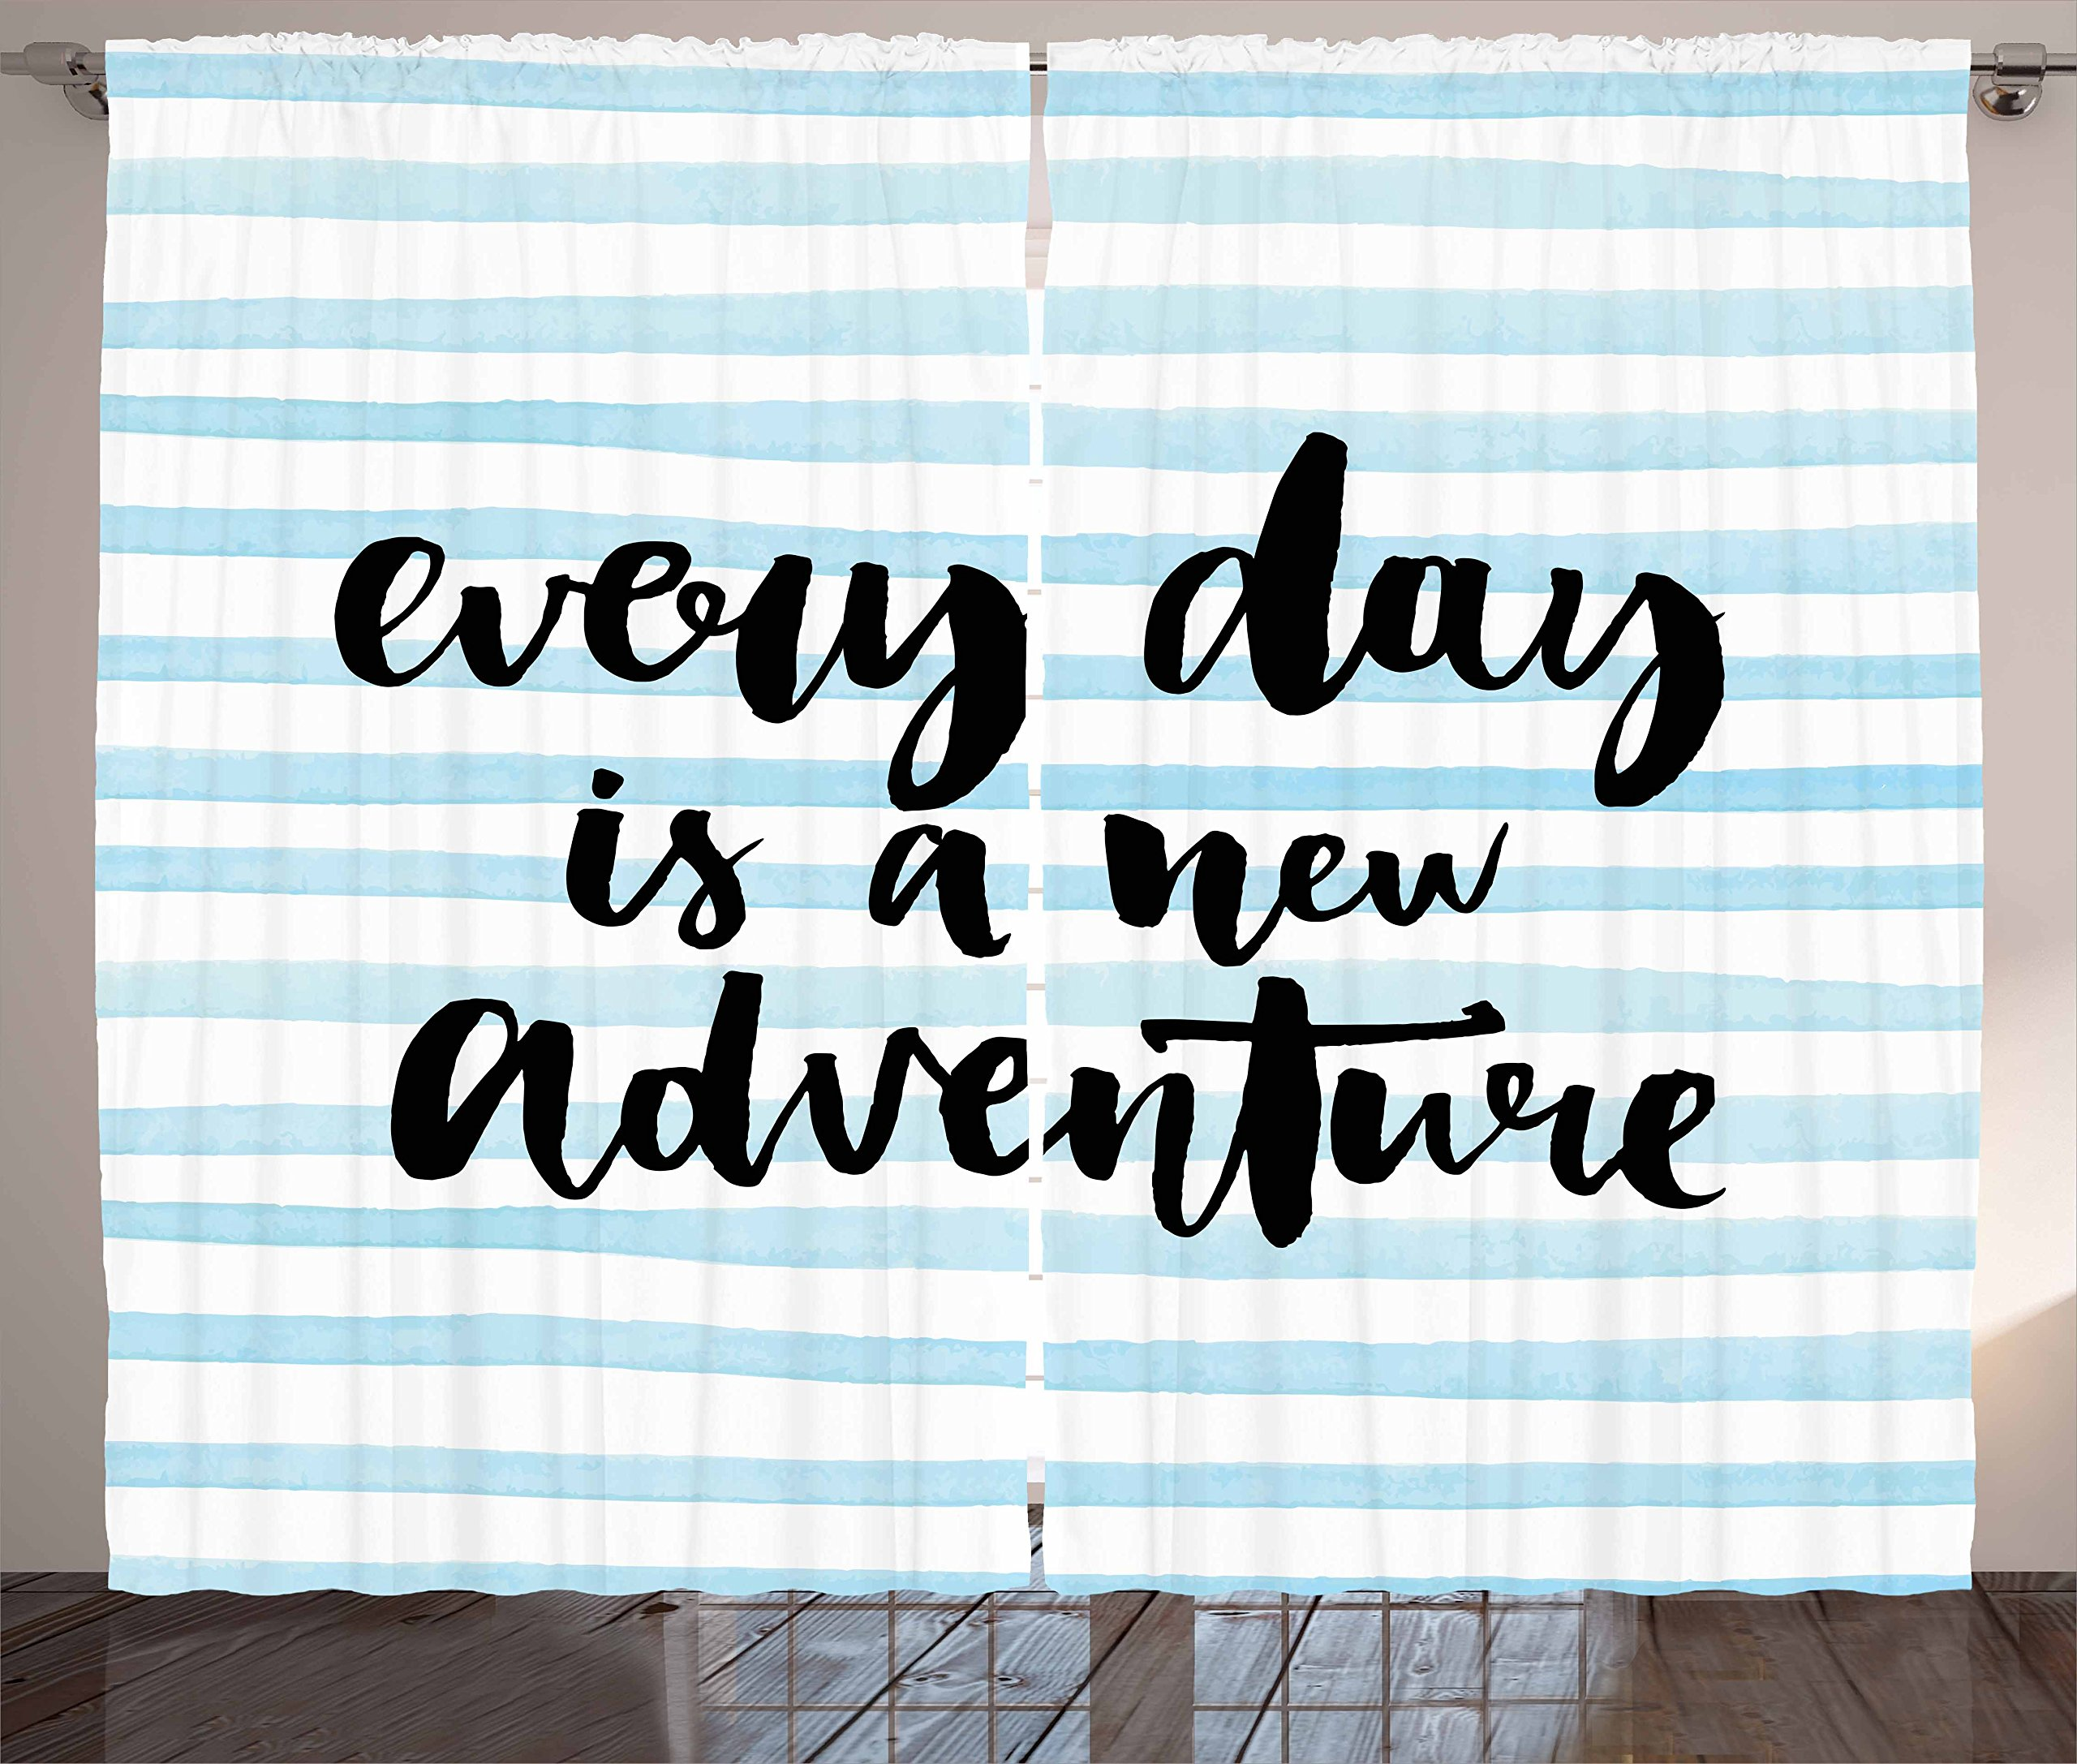 Ambesonne Adventure Curtains, Every Day is a New Adventure Quote Inspirational Things About Life Artwork, Living Room Bedroom Window Drapes 2 Panel Set, 108 W X 63 L inches, Baby Blue Black